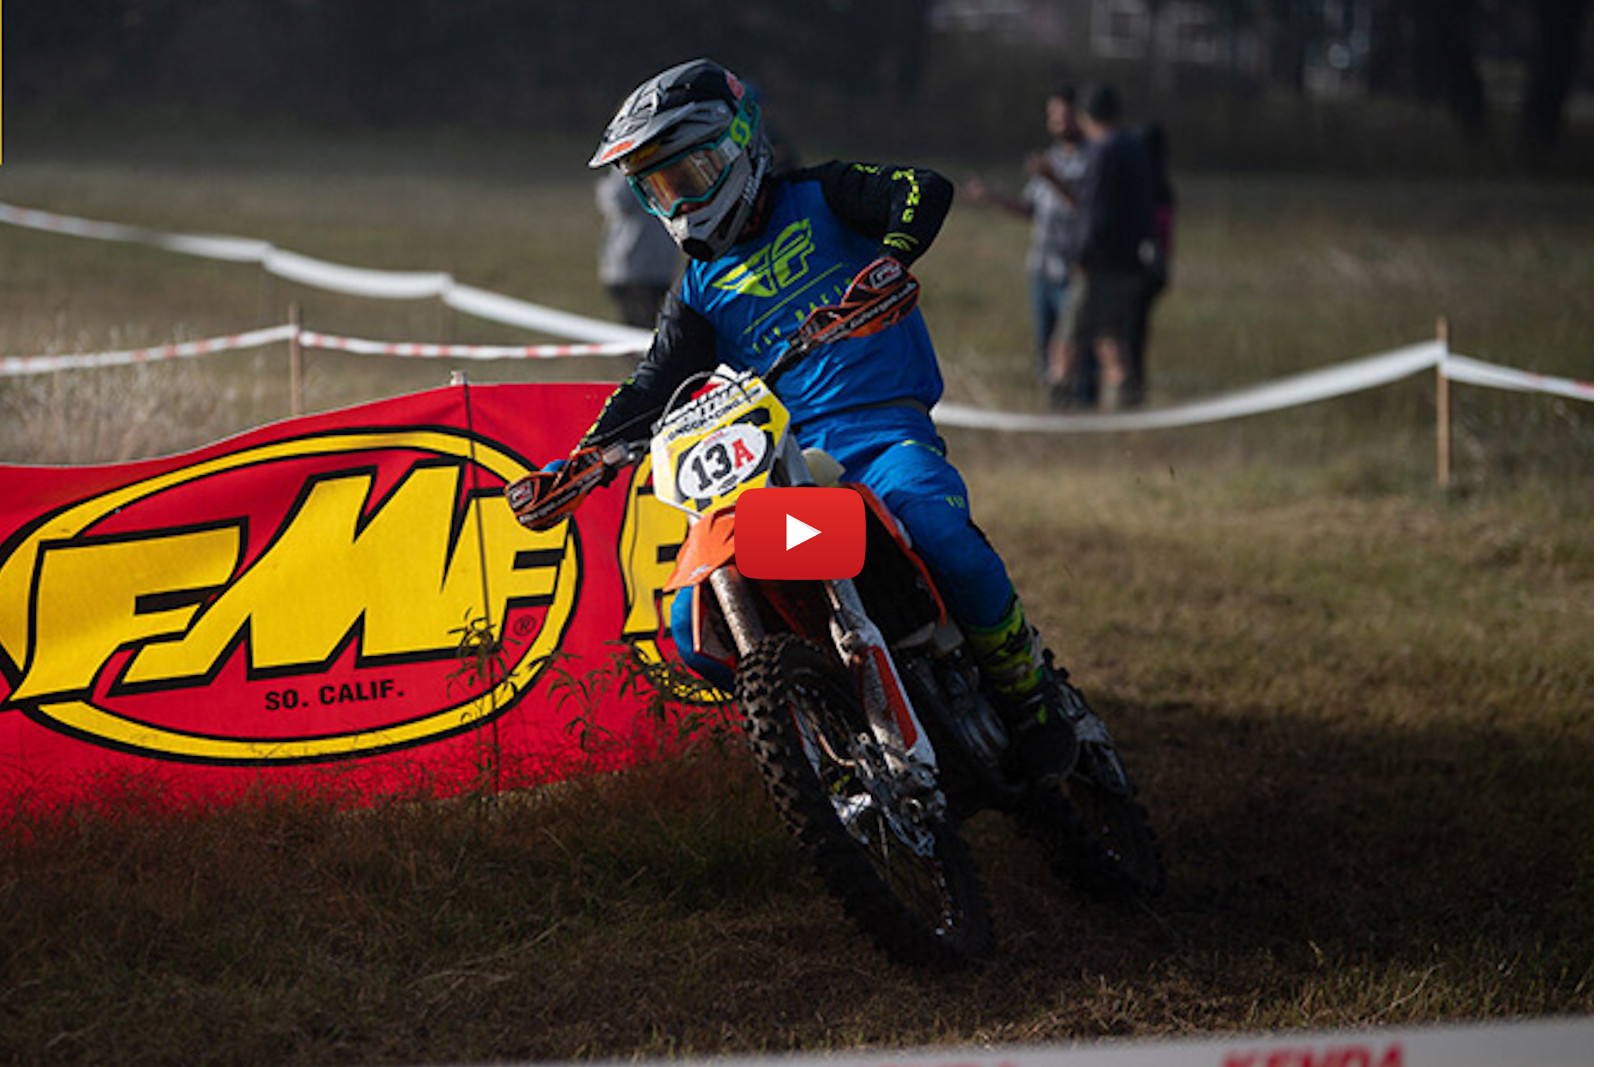 Event Highlishts: Zink Ranch National Enduro – Flat grass tests in the USA? What?!